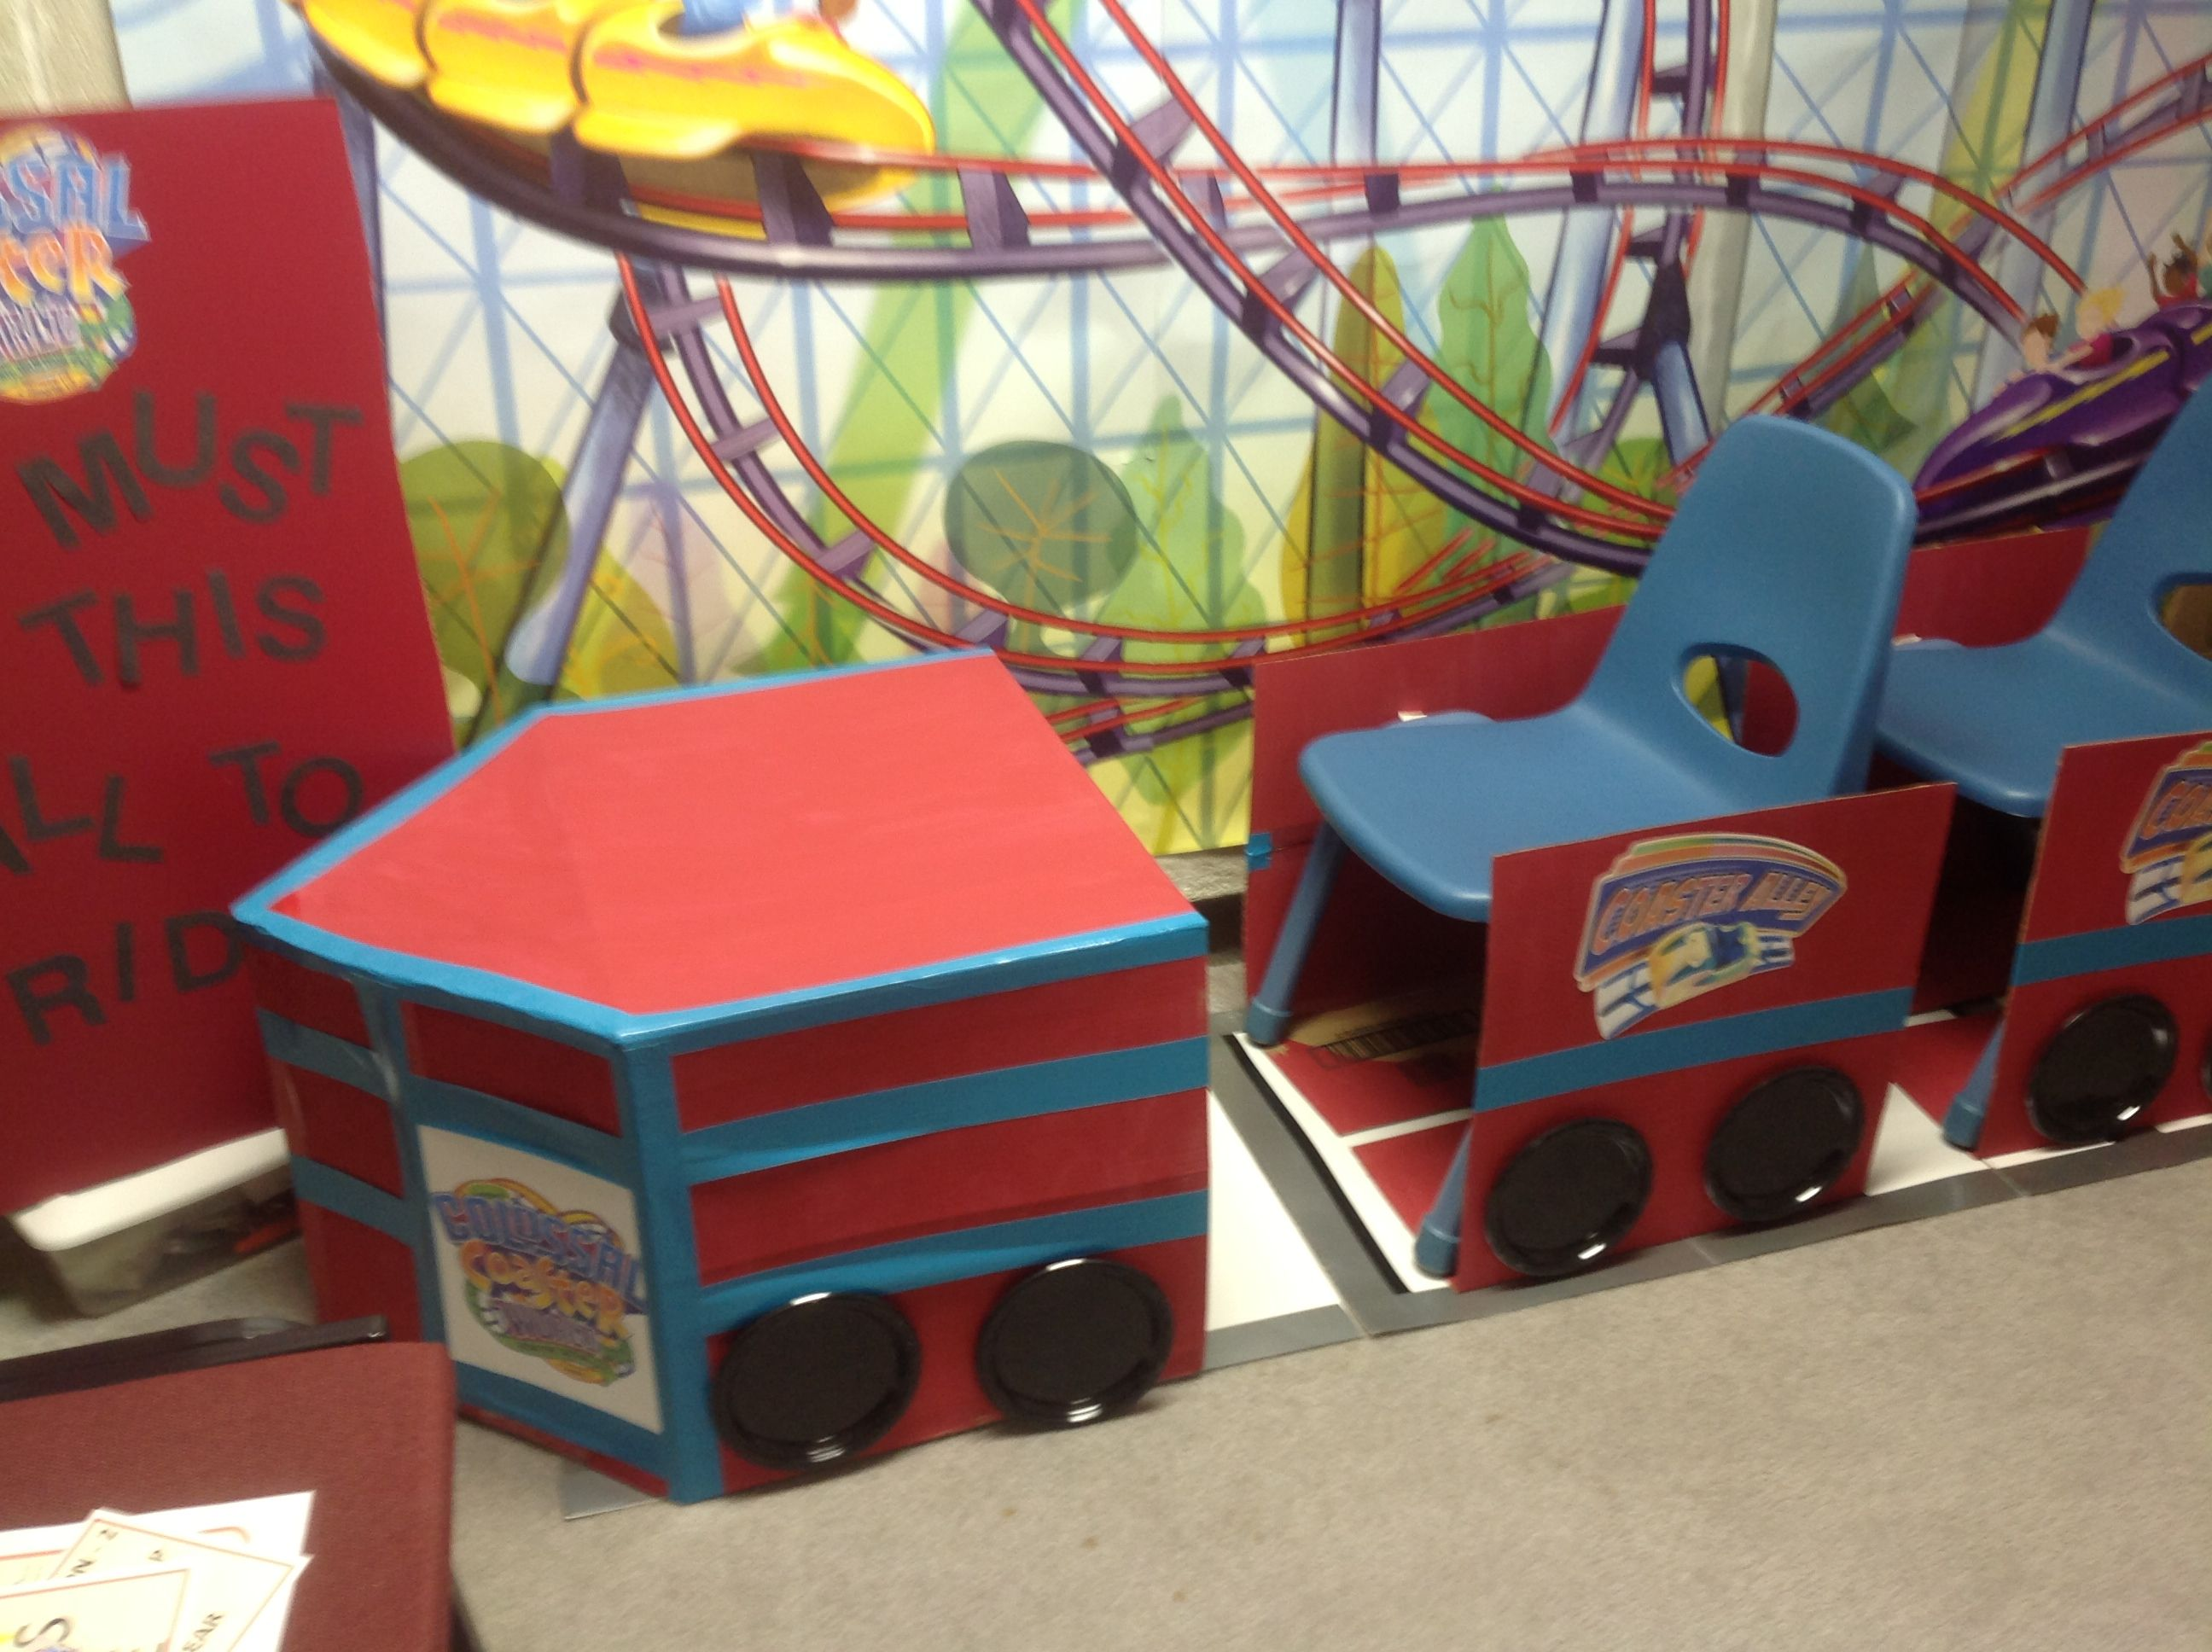 Boxes Painted And Taped To Look Like Roller Coaster Cars